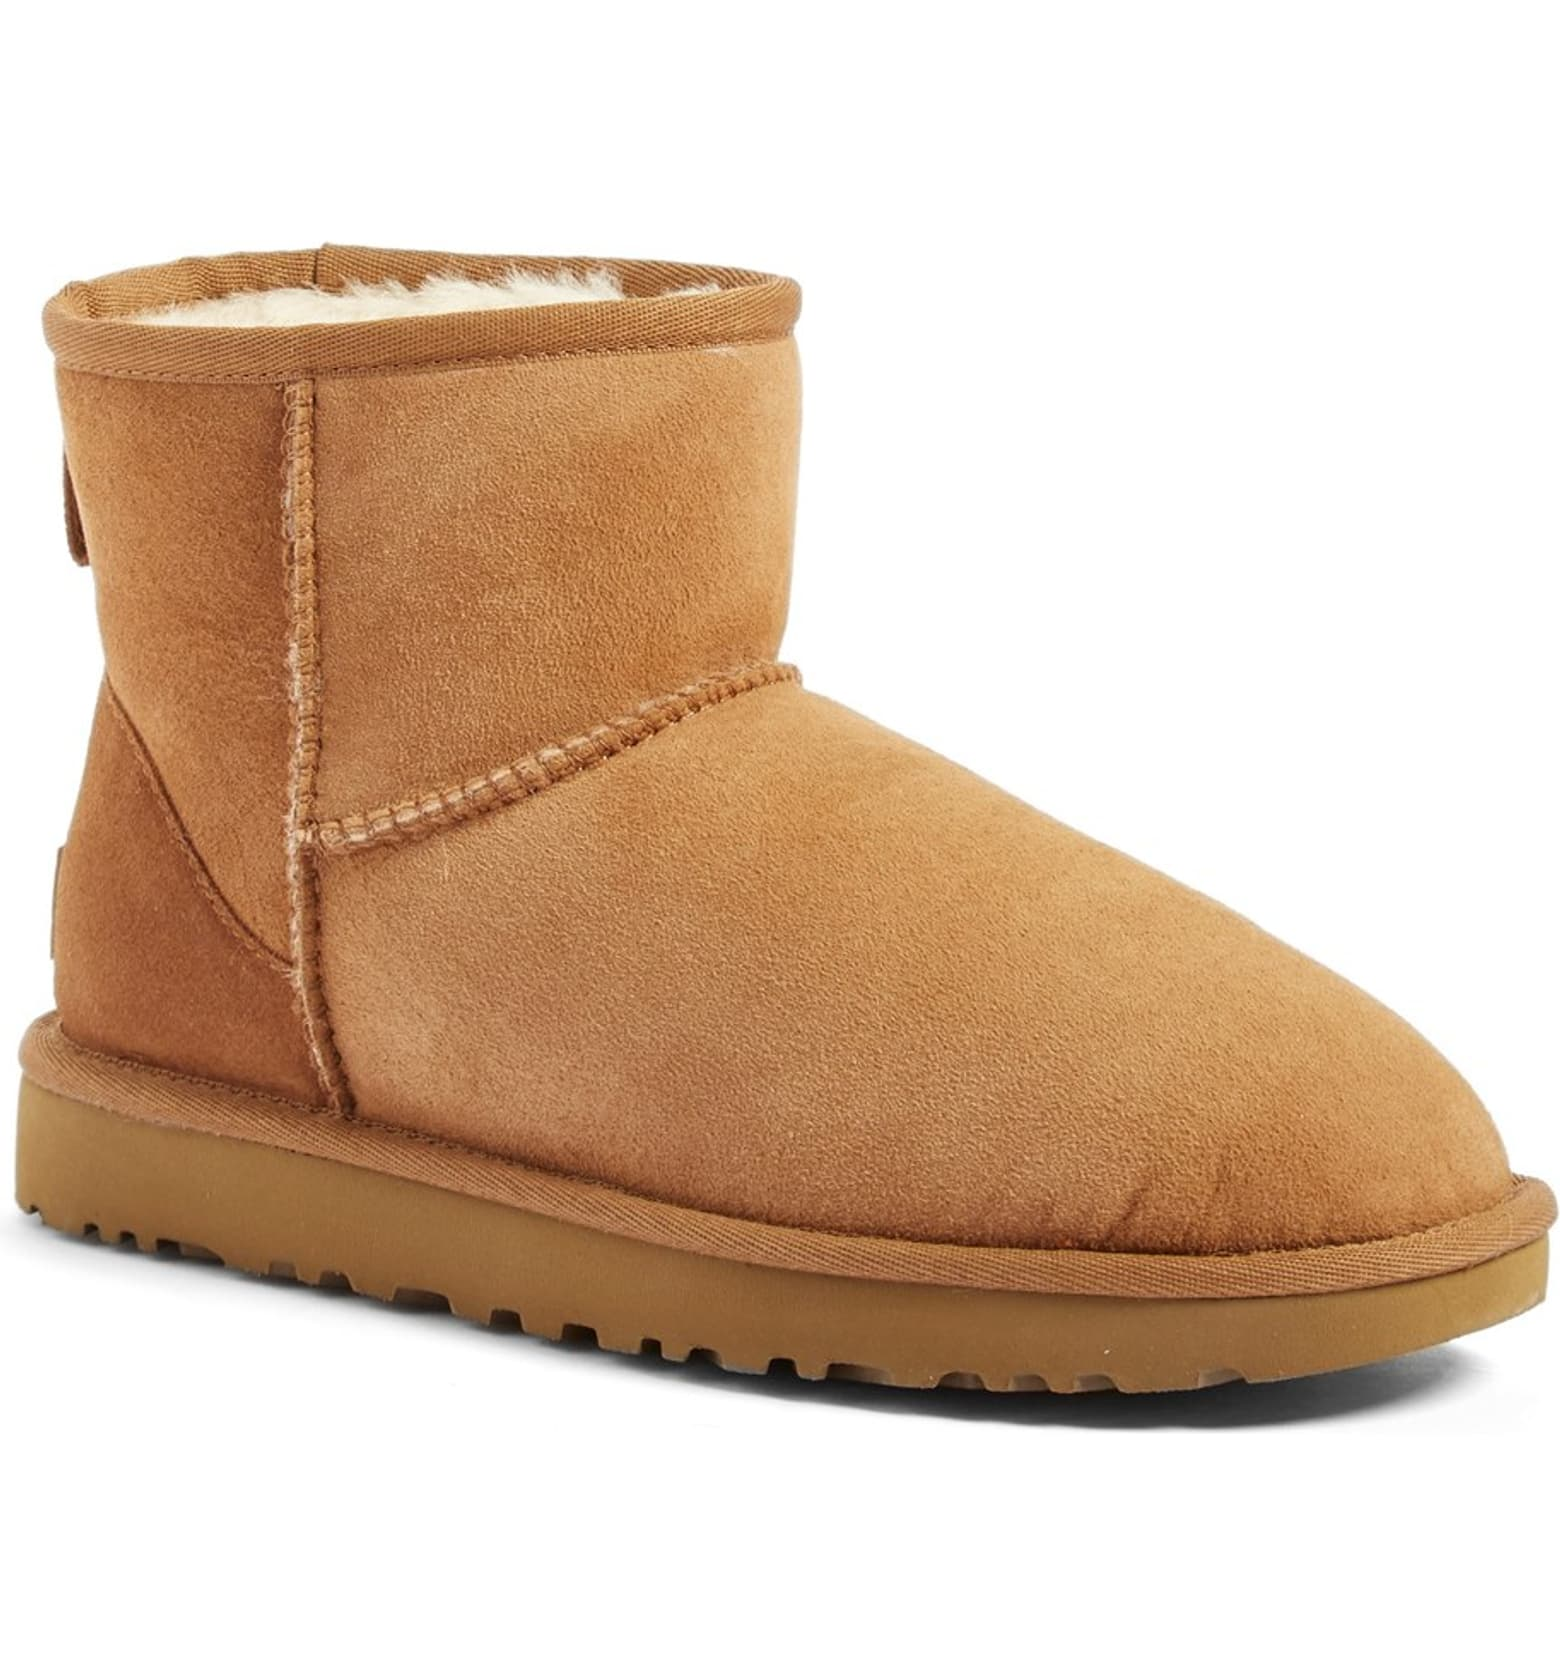 Classic Mini II Genuine Shearling Lined Boot by Ugg, available on nordstrom.com for $139.95 Gigi Hadid Shoes Exact Product